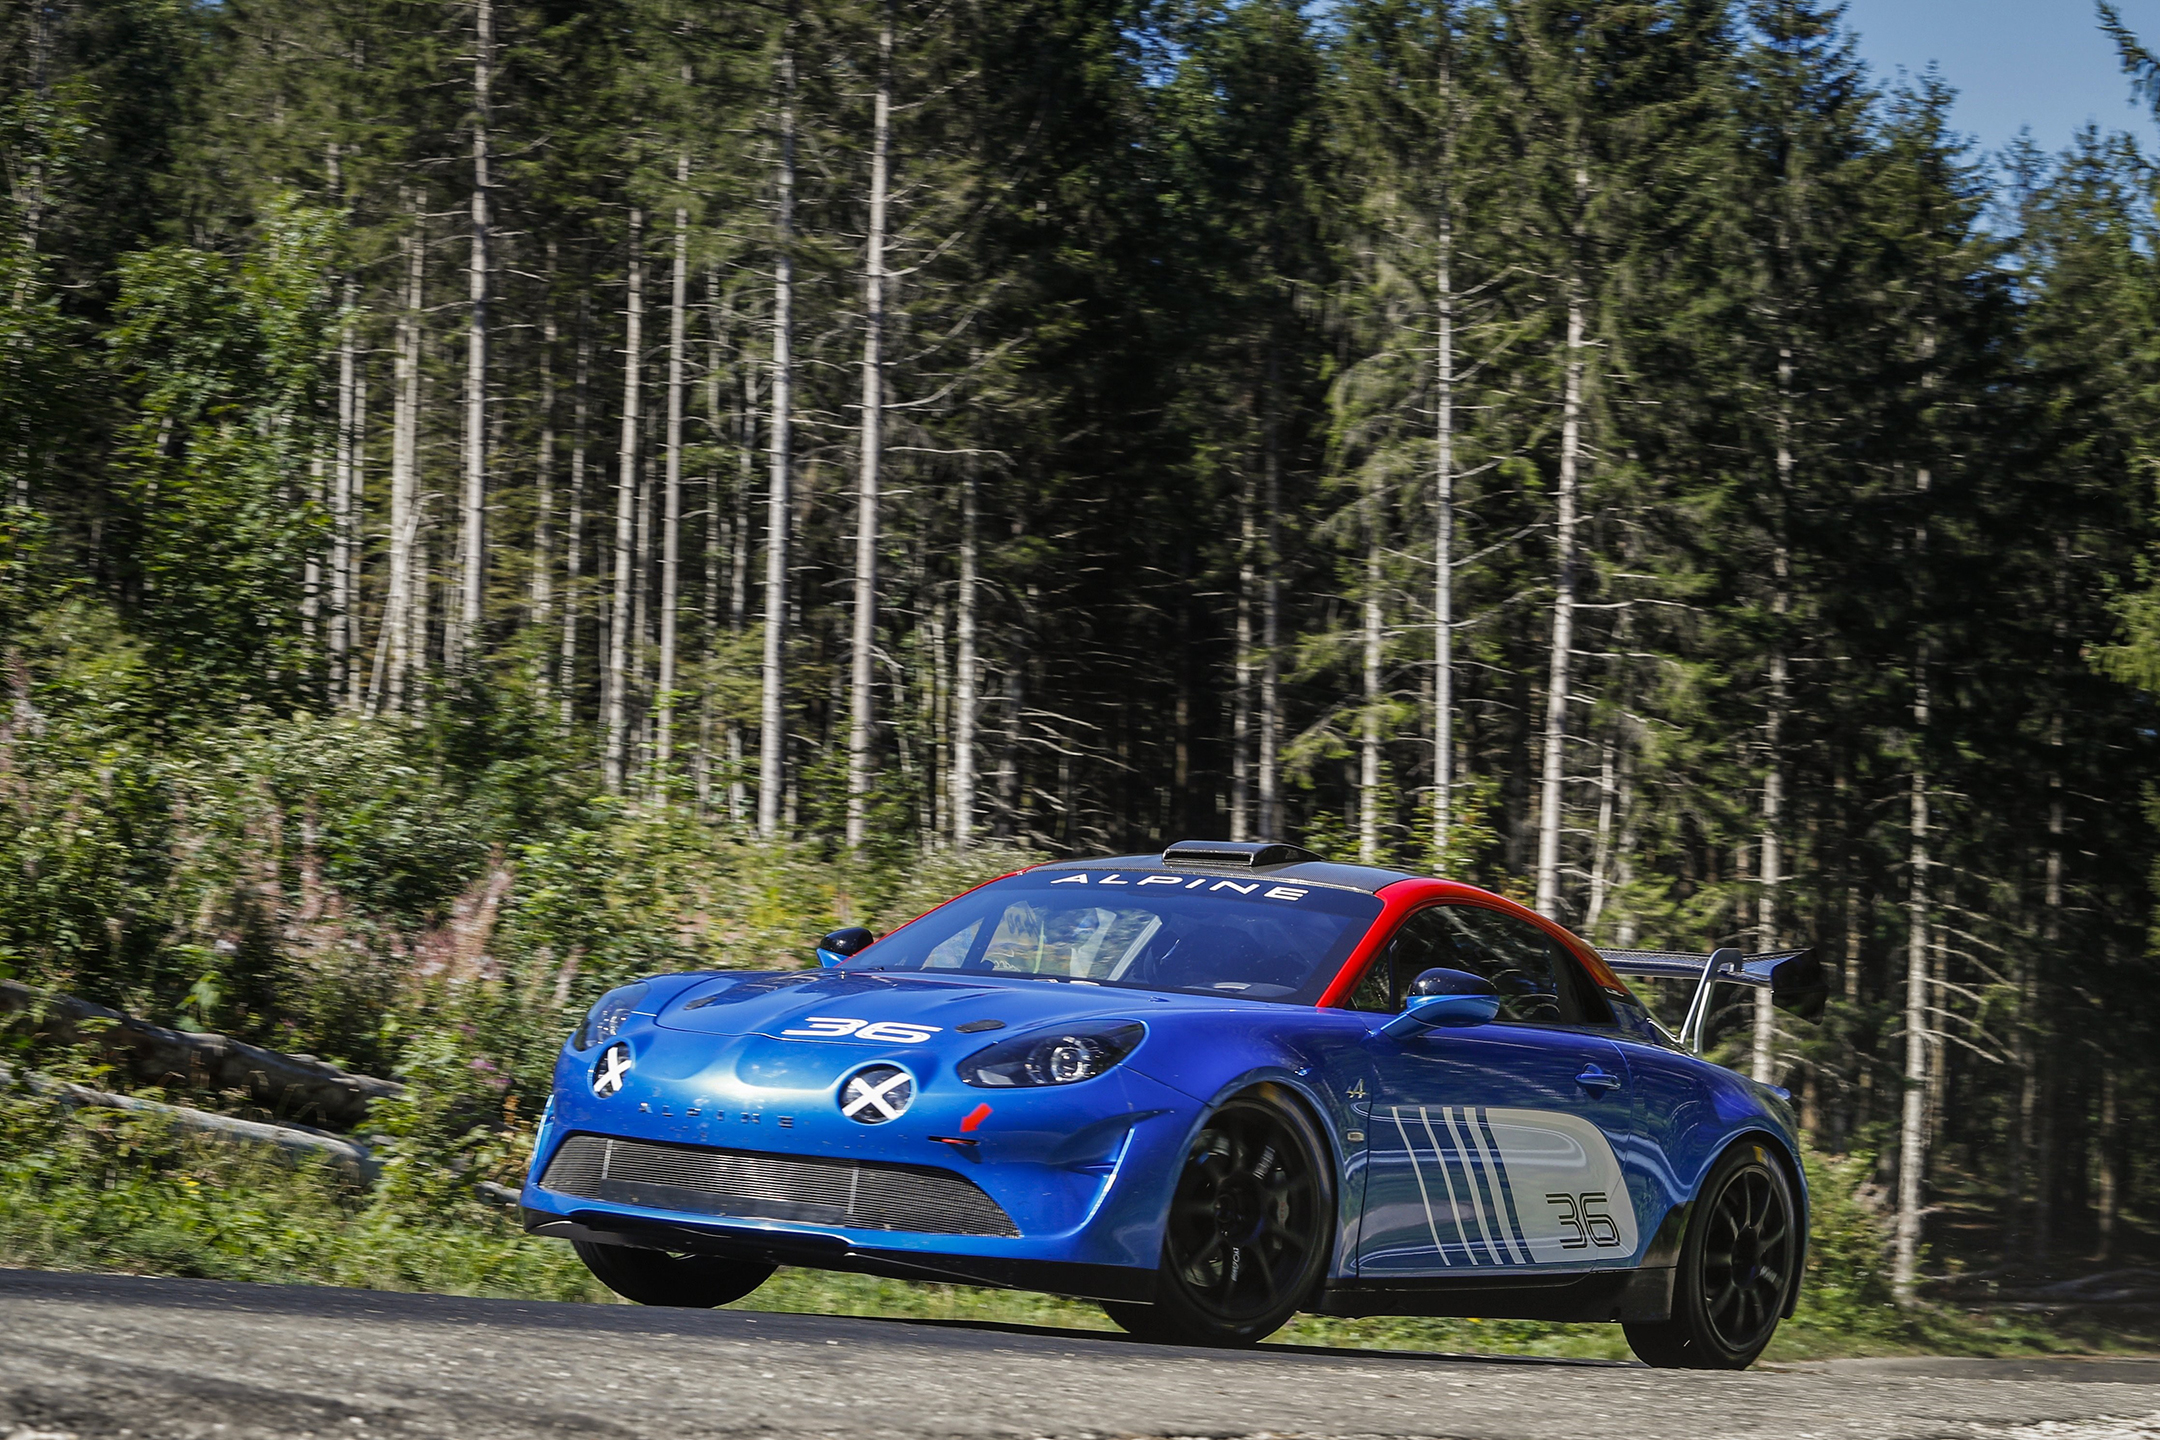 Alpine A110 Rally - 2019 - front side-face / profil avant - road